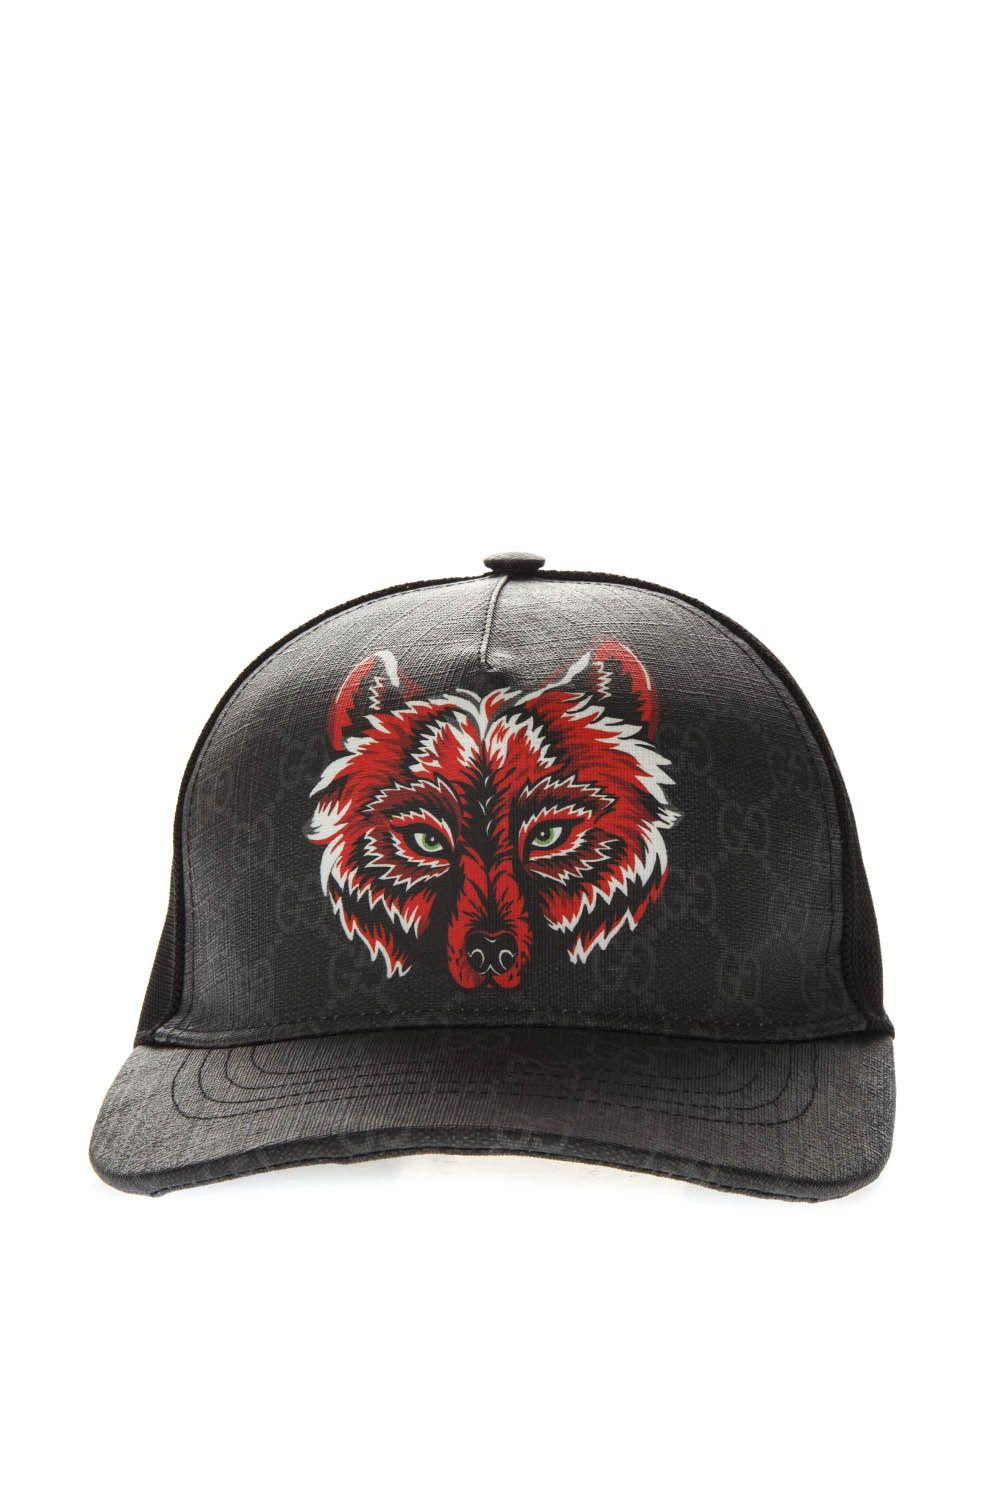 b418ec0e5cd Black Gg Supreme Baseball Hat With Wolf Print by Gucci buy at ...